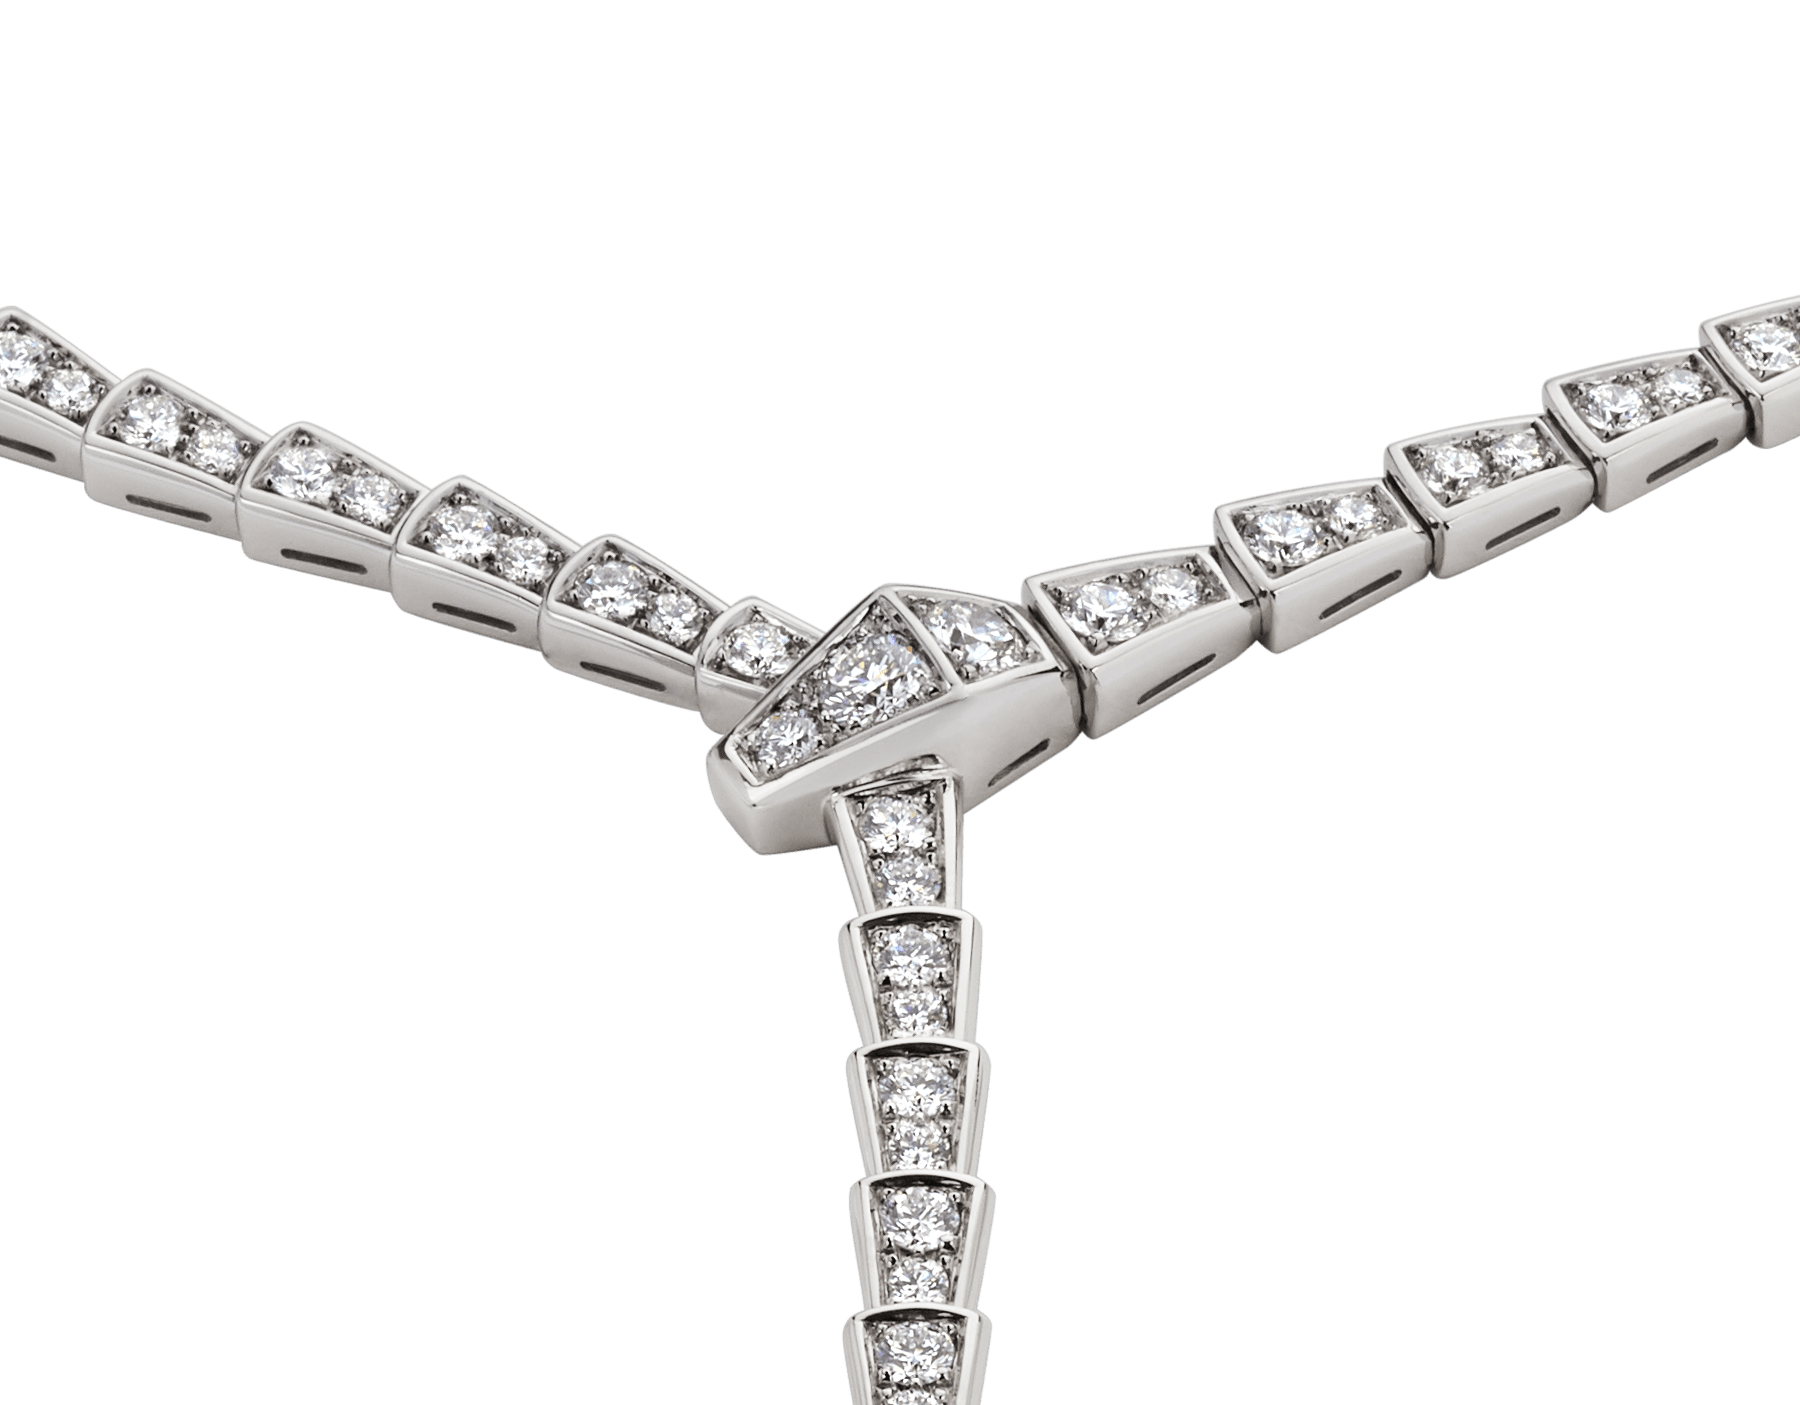 Serpenti Viper slim necklace in 18 kt white gold, set with full pavé diamonds. 351090 image 2